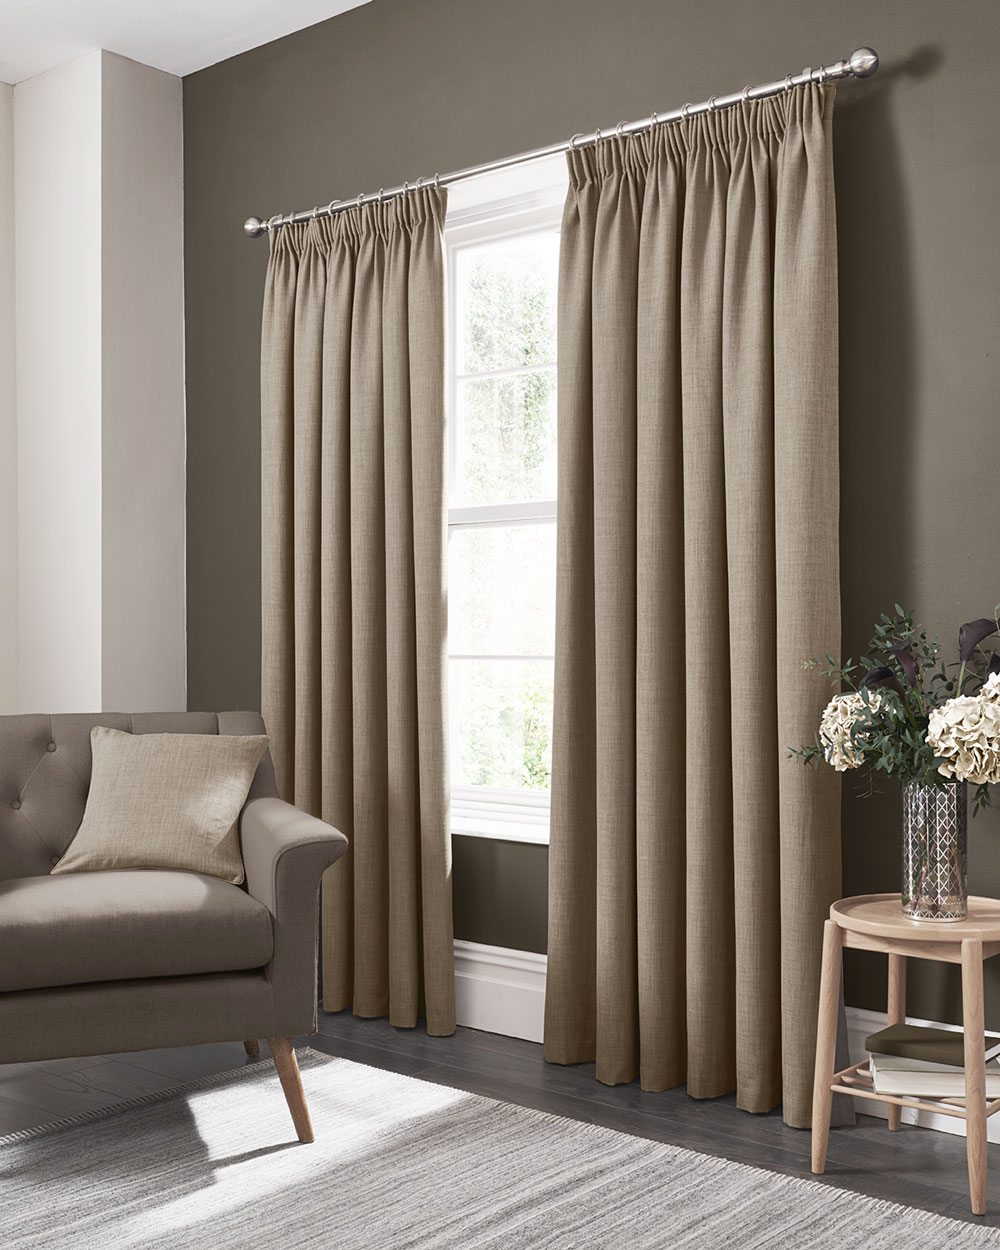 Studio G Elba Pencil Pleat Curtains  Linen Ready Made Curtains - Product code: M1105/03/90X9